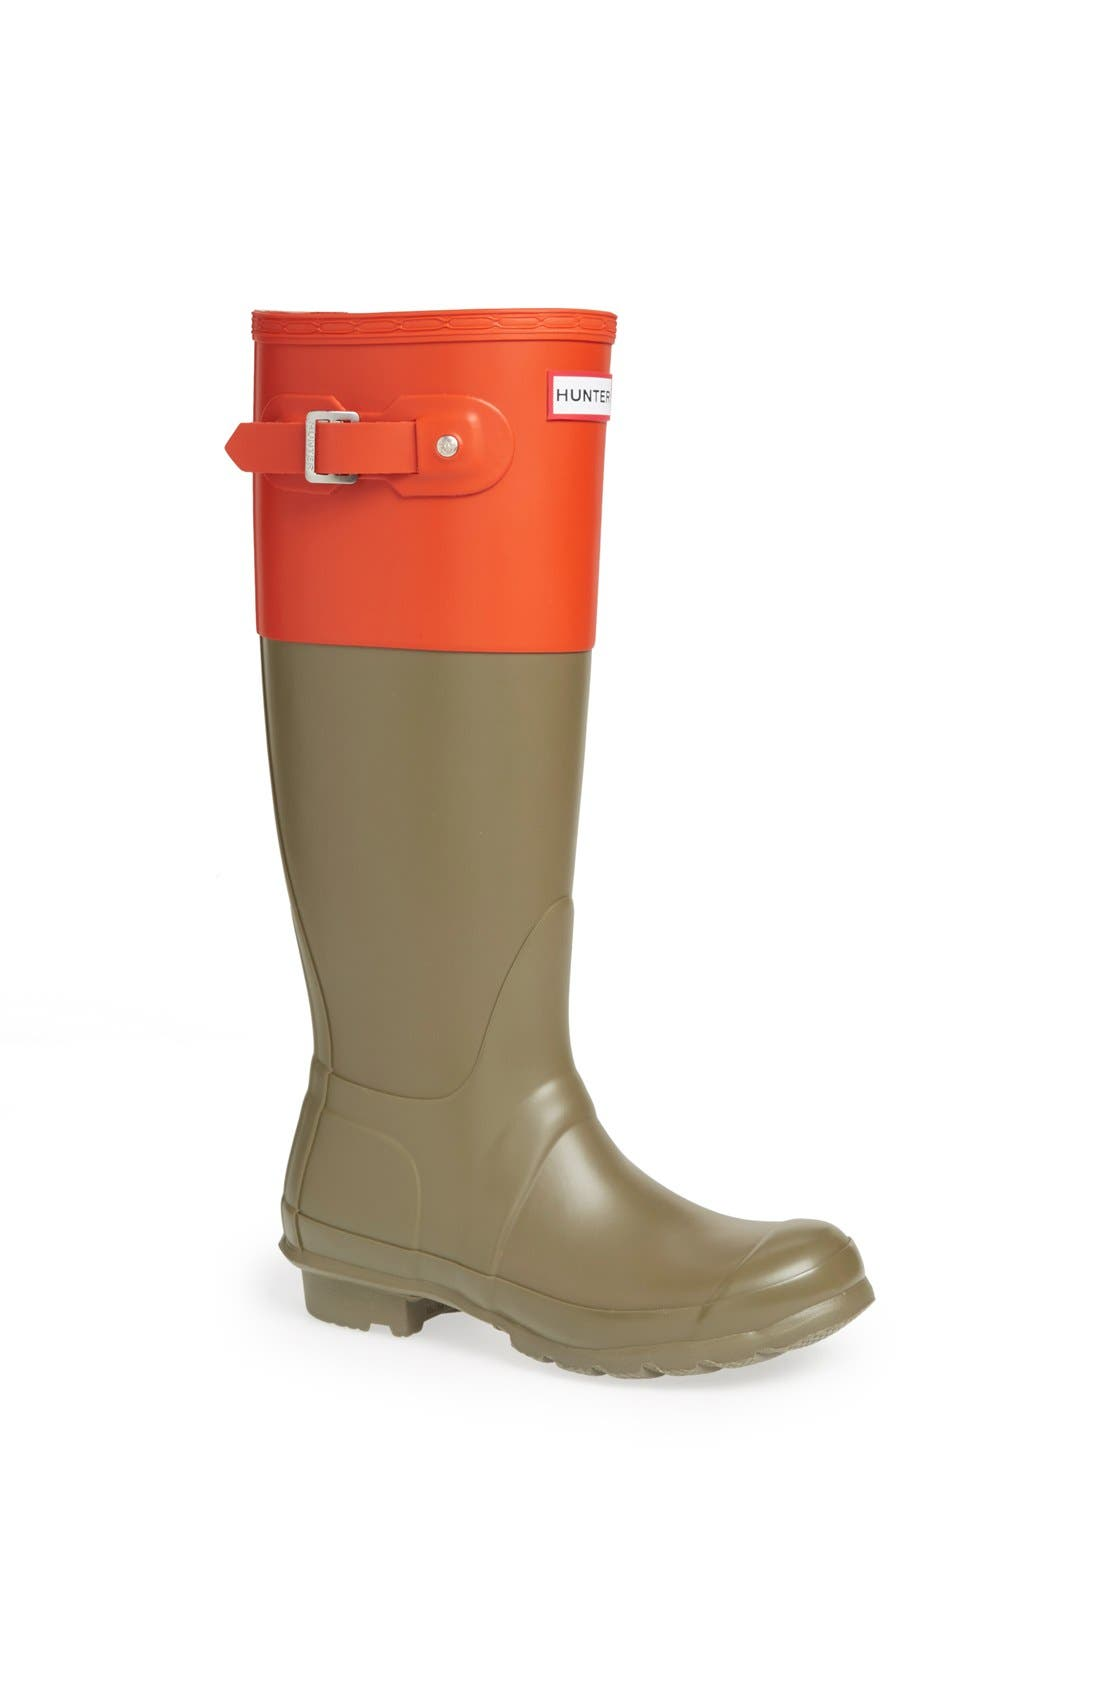 Alternate Image 1 Selected - Hunter 'Original Colorblock' Rain Boot (Women)